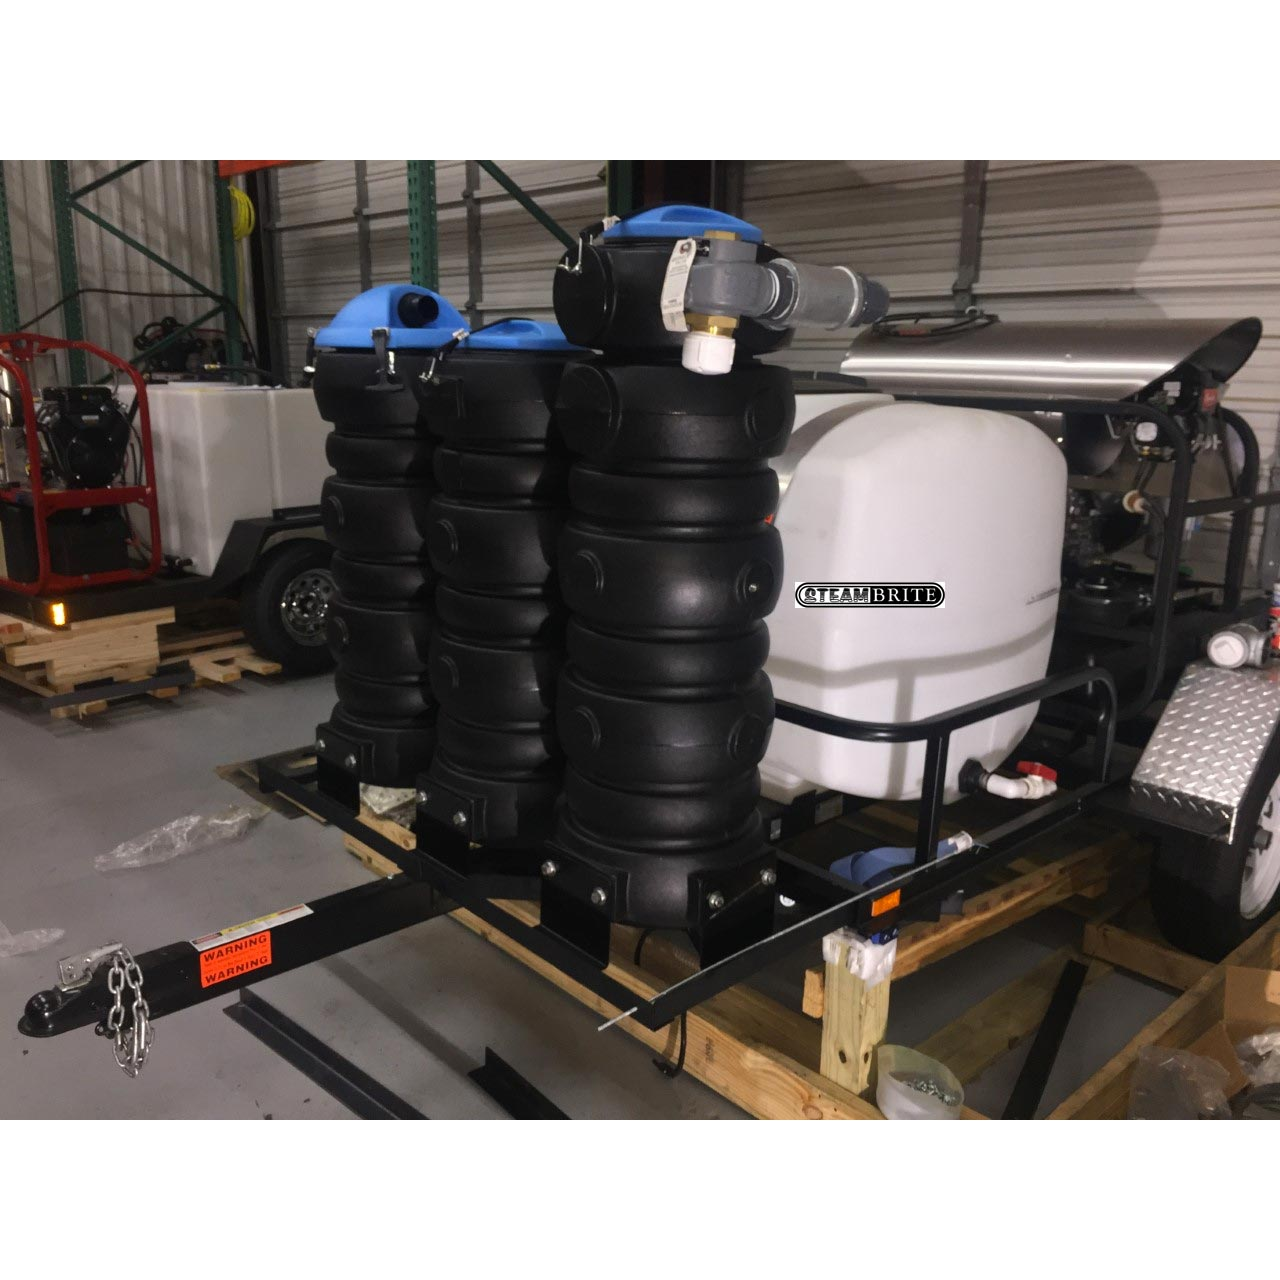 -Trailer Truck Mount 32Hp 4000 PSI @ 5 GPM AR Pump HOT Pressure Washer Vacuum Recovery System TM32-425 cfm with Hoses and tools (cash priced)